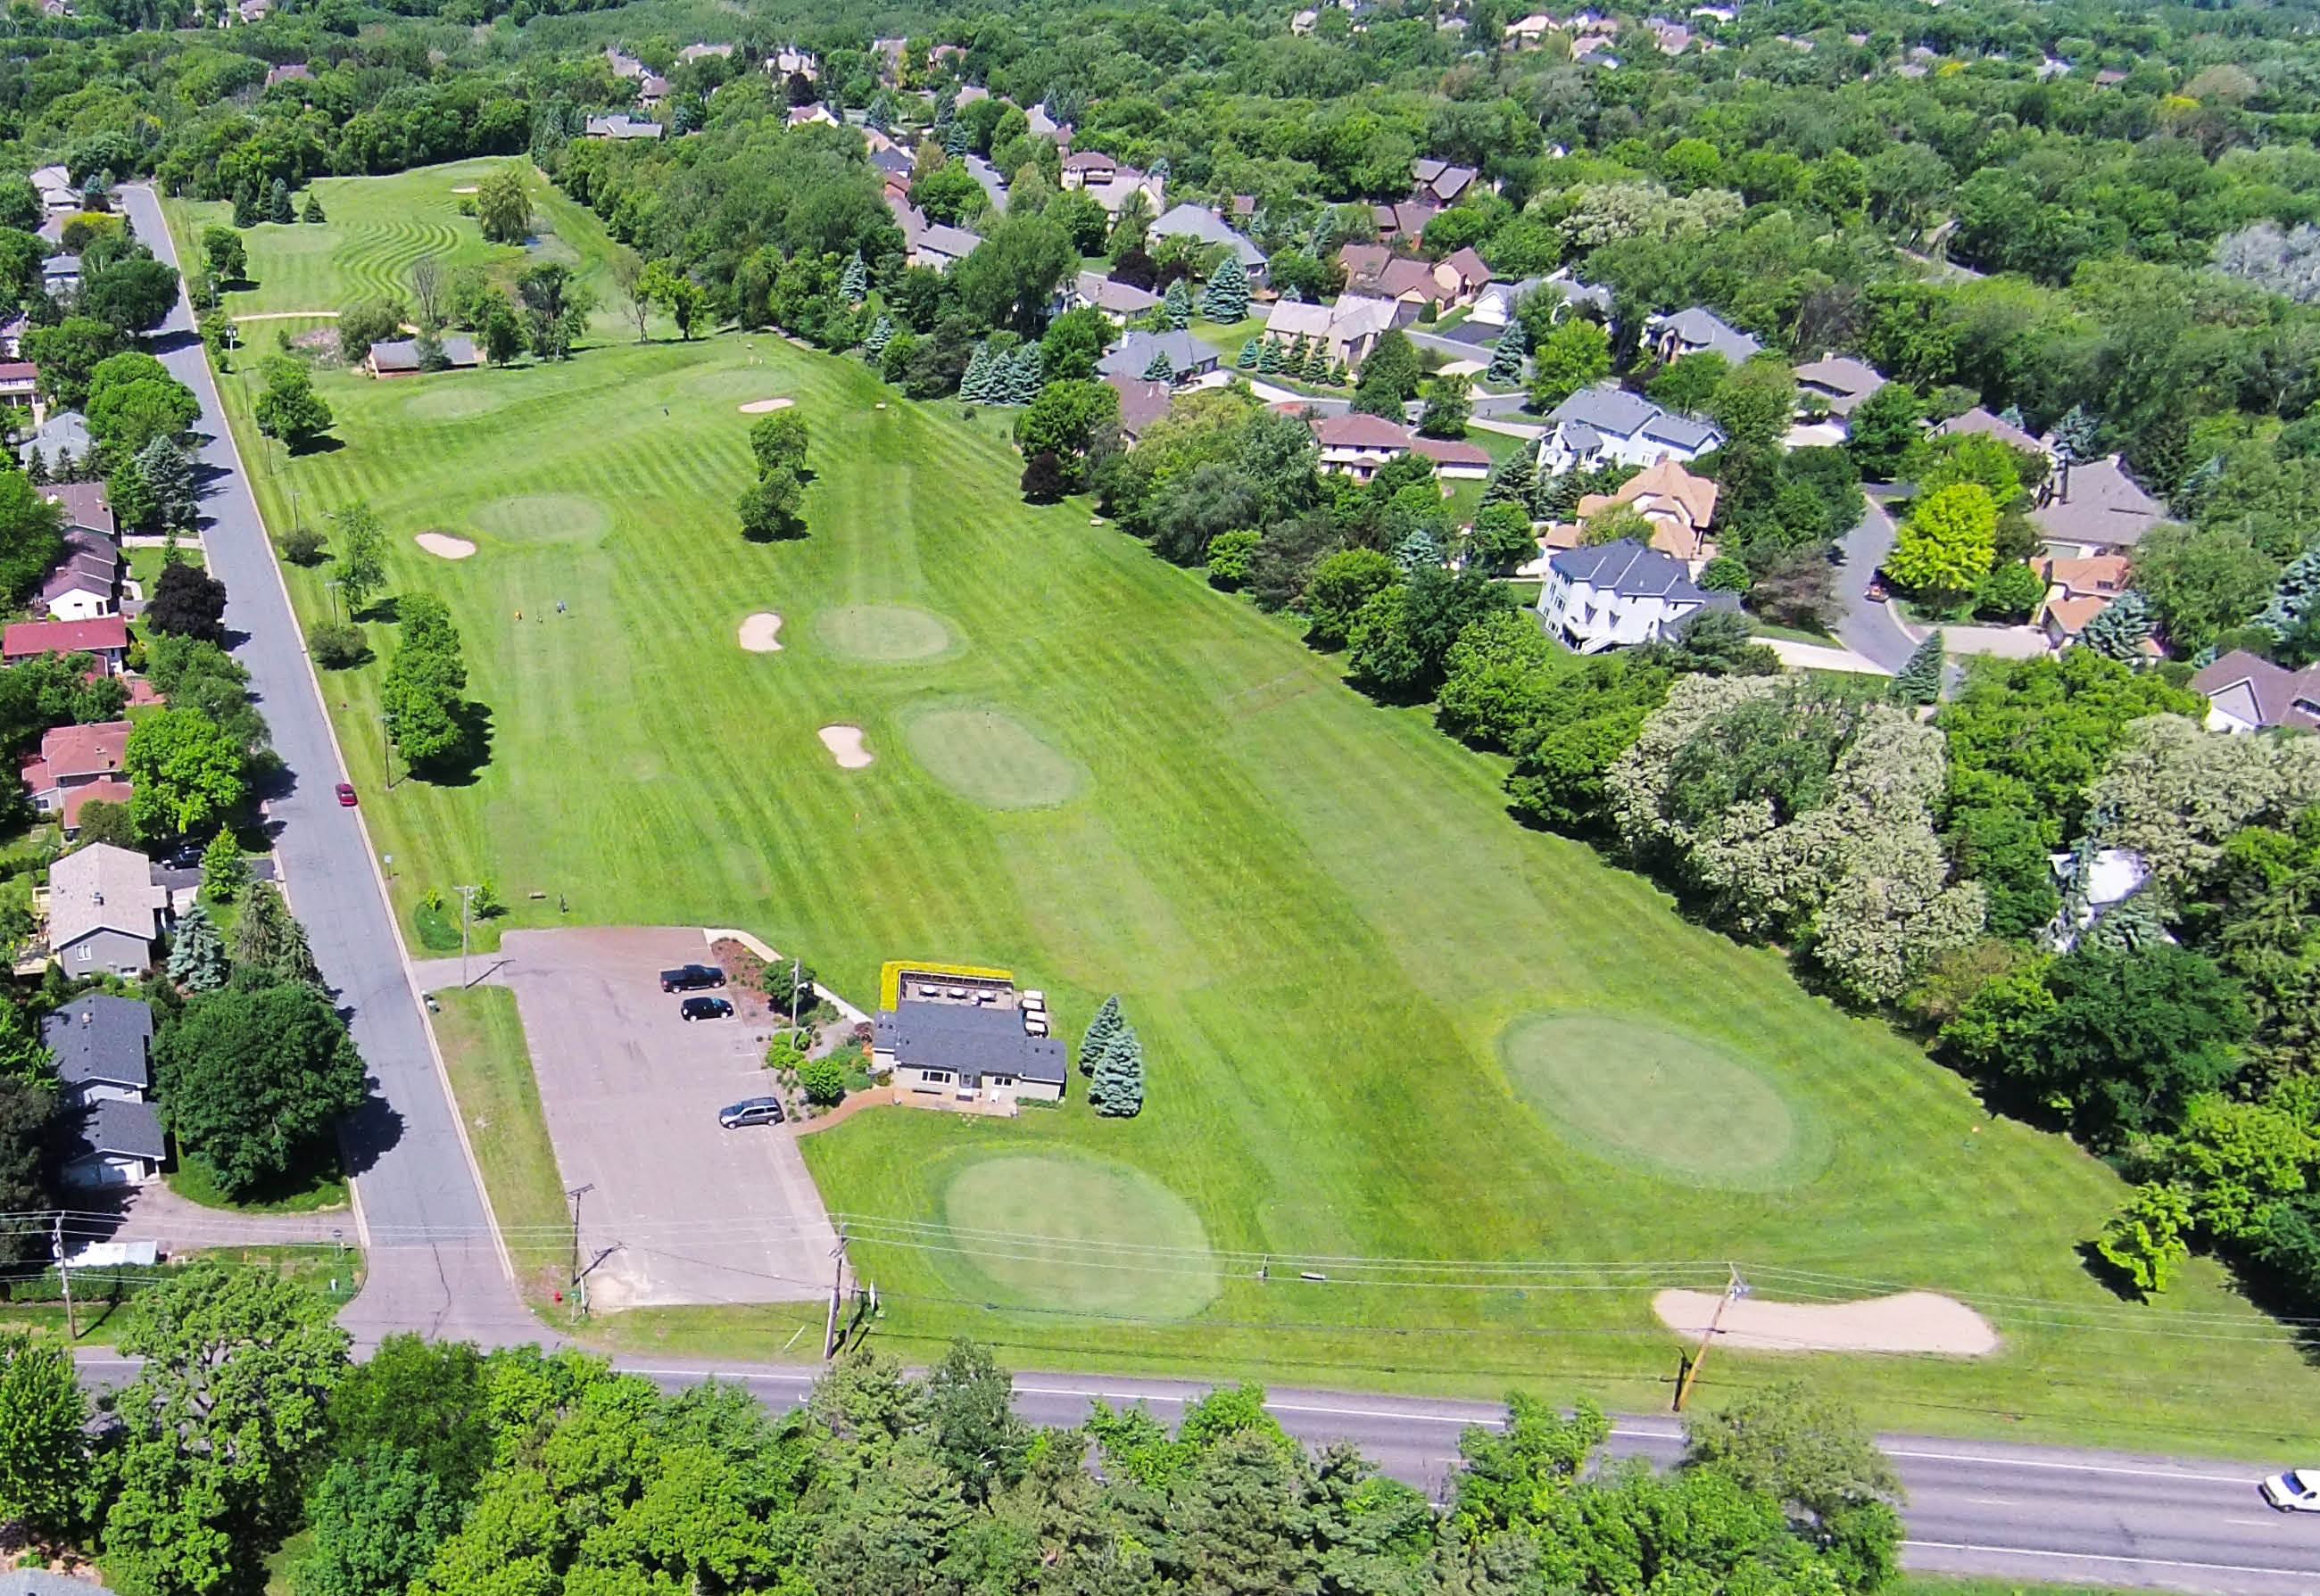 Aerial View of Par 3 Golf Course in Mendota Heights, MN